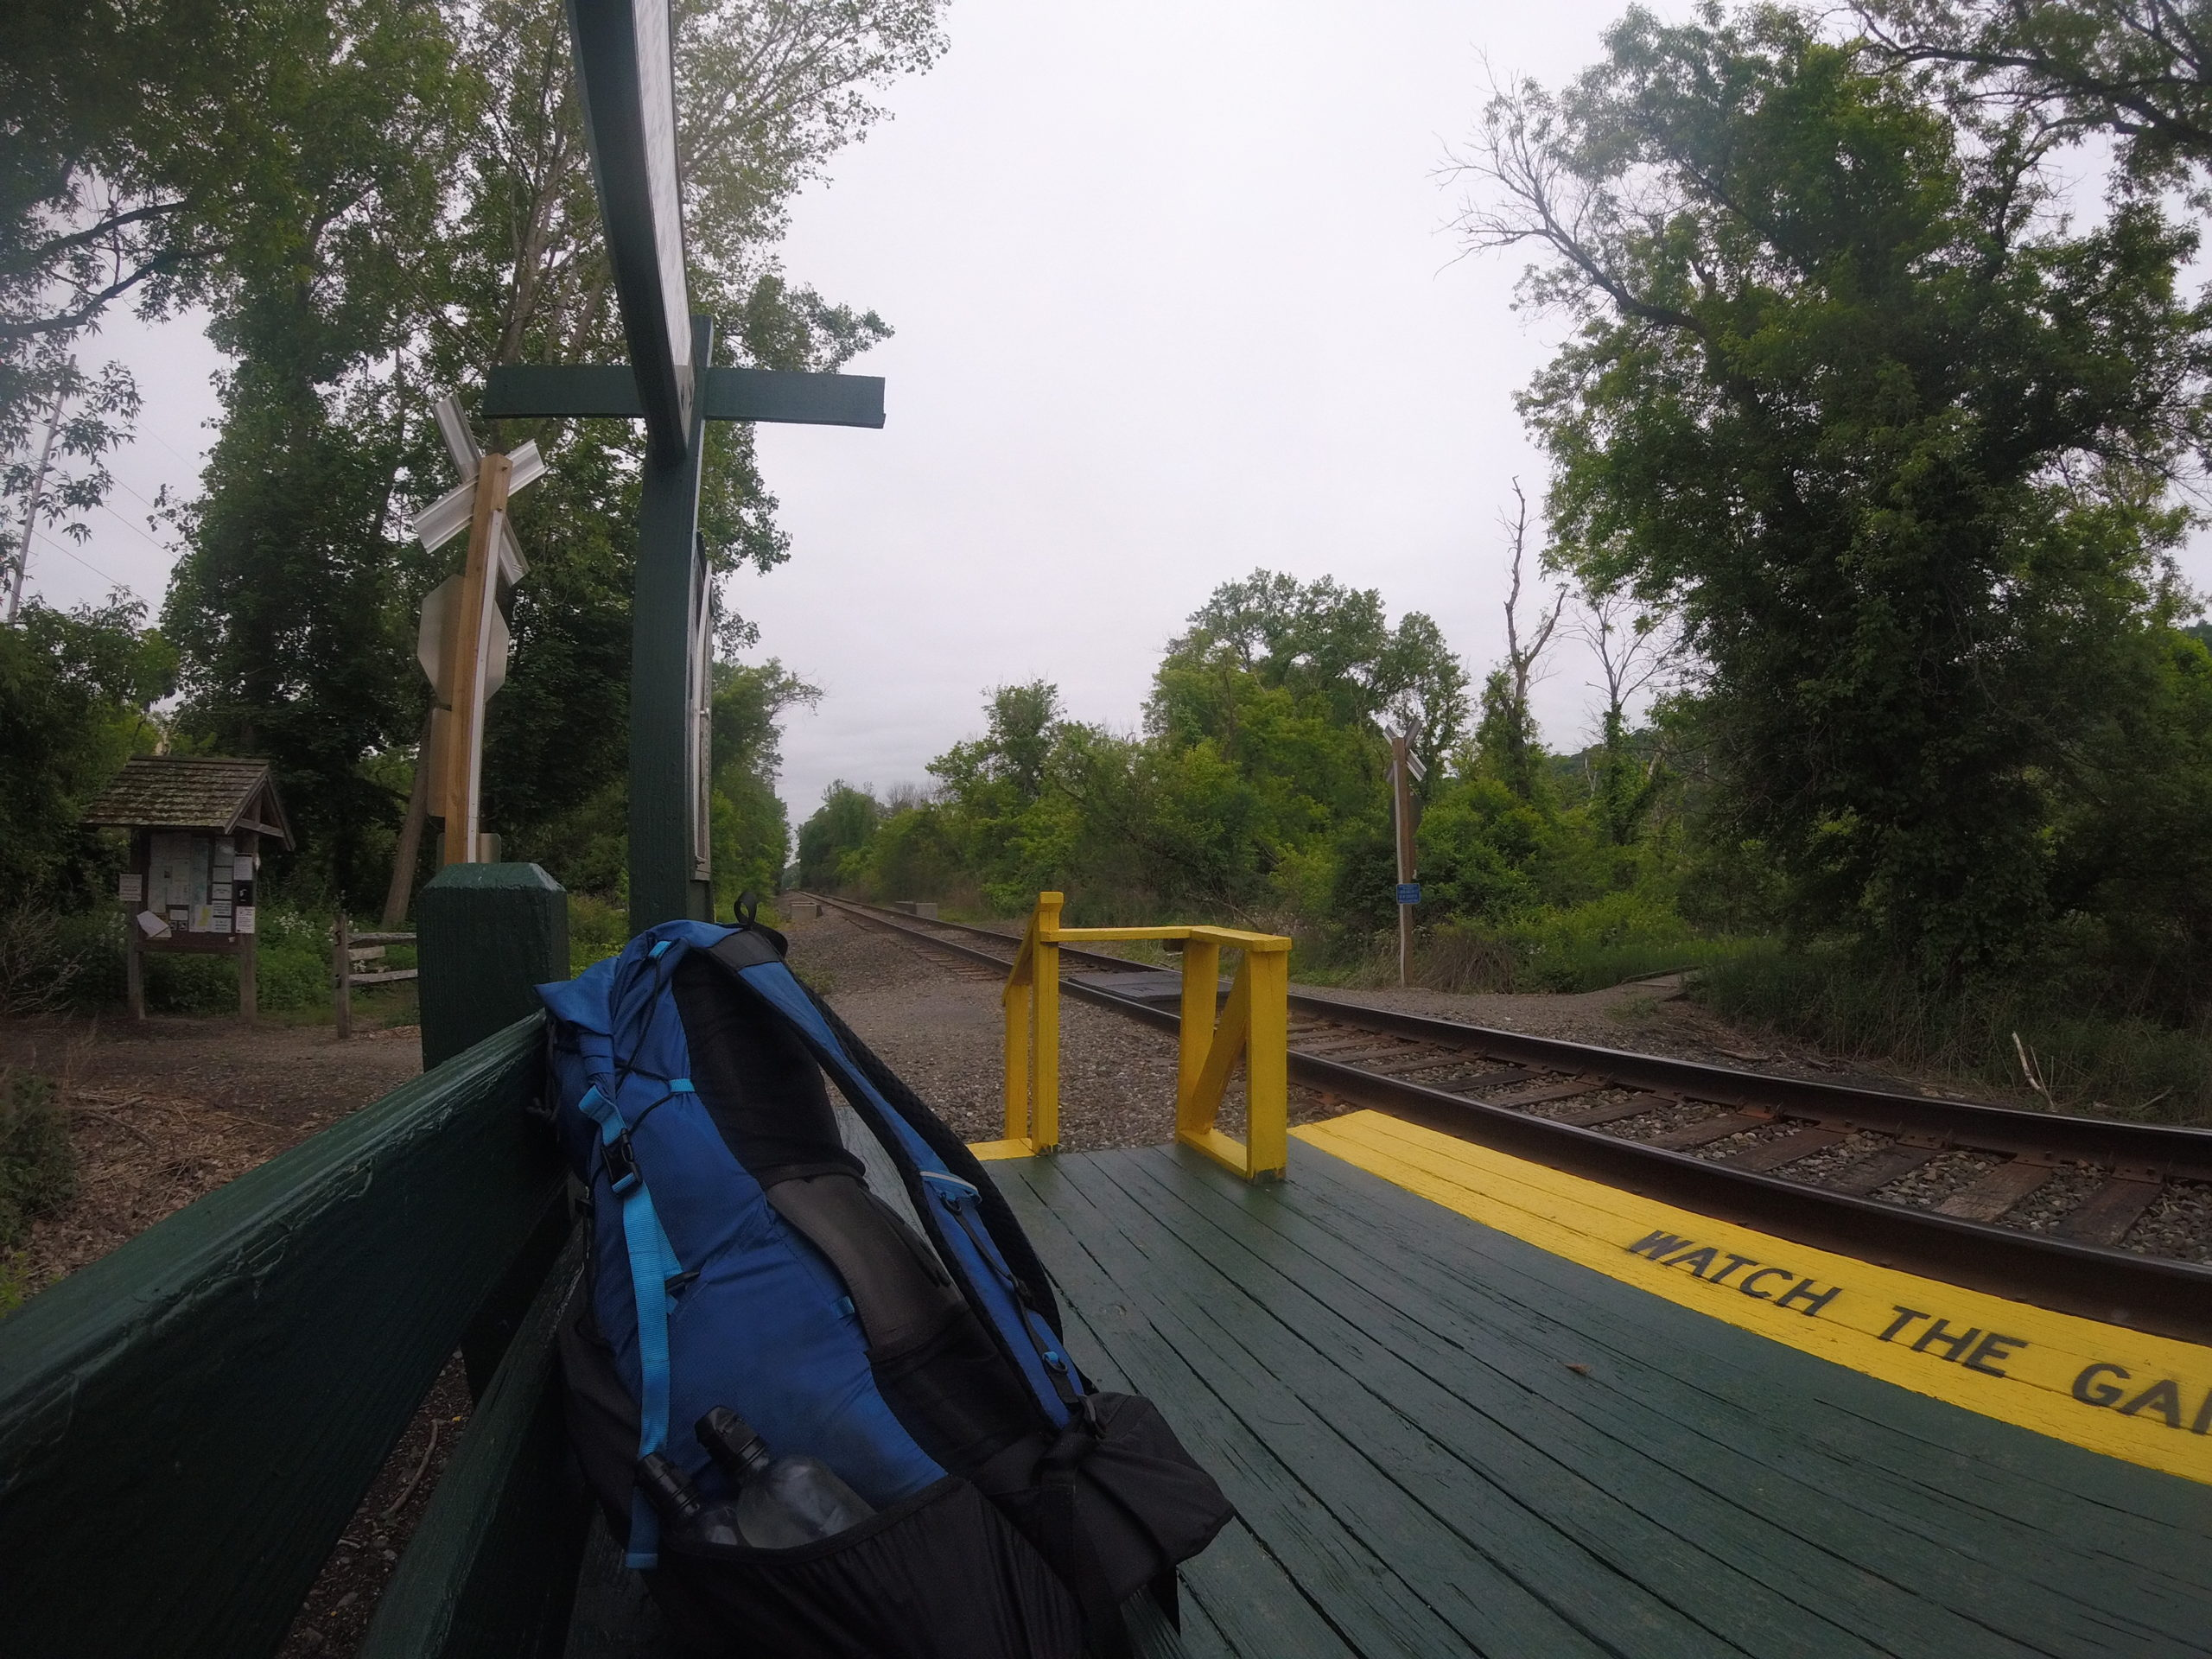 Blue backpack sits on bench at train station located in Pawling, NY on the Appalachian Trail